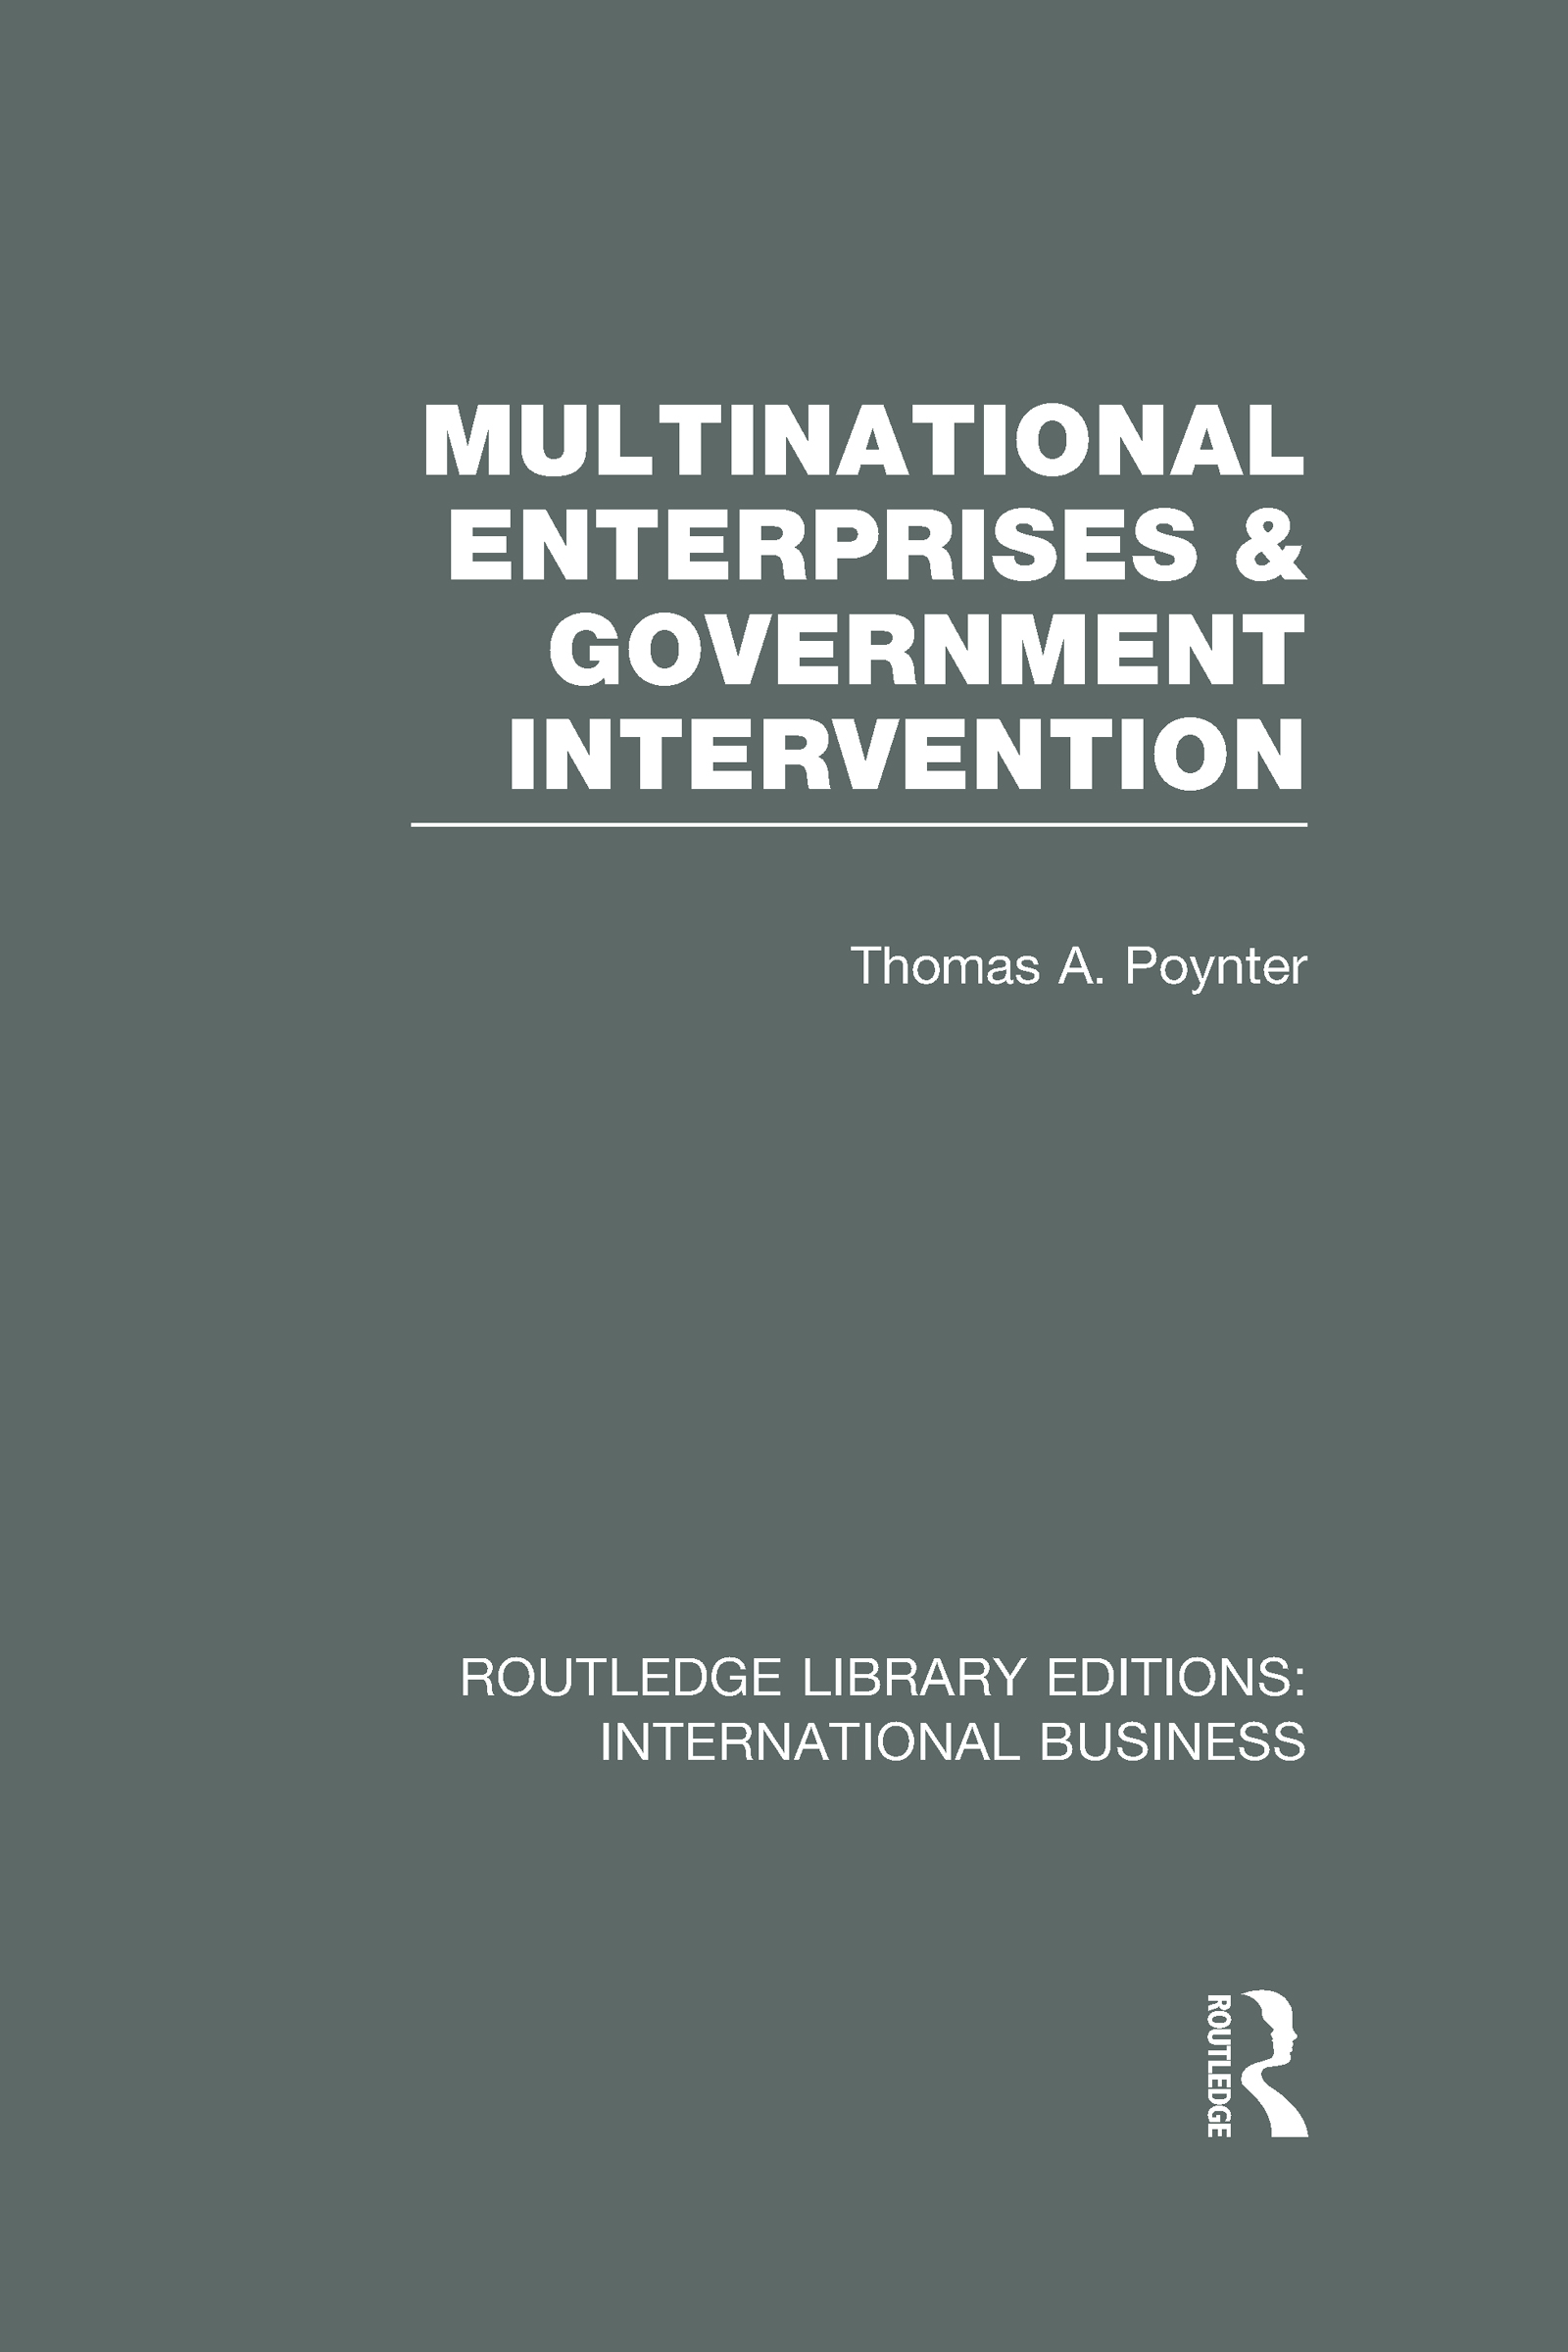 Multinational Enterprises and Government Intervention (RLE International Business) (Hardback) book cover